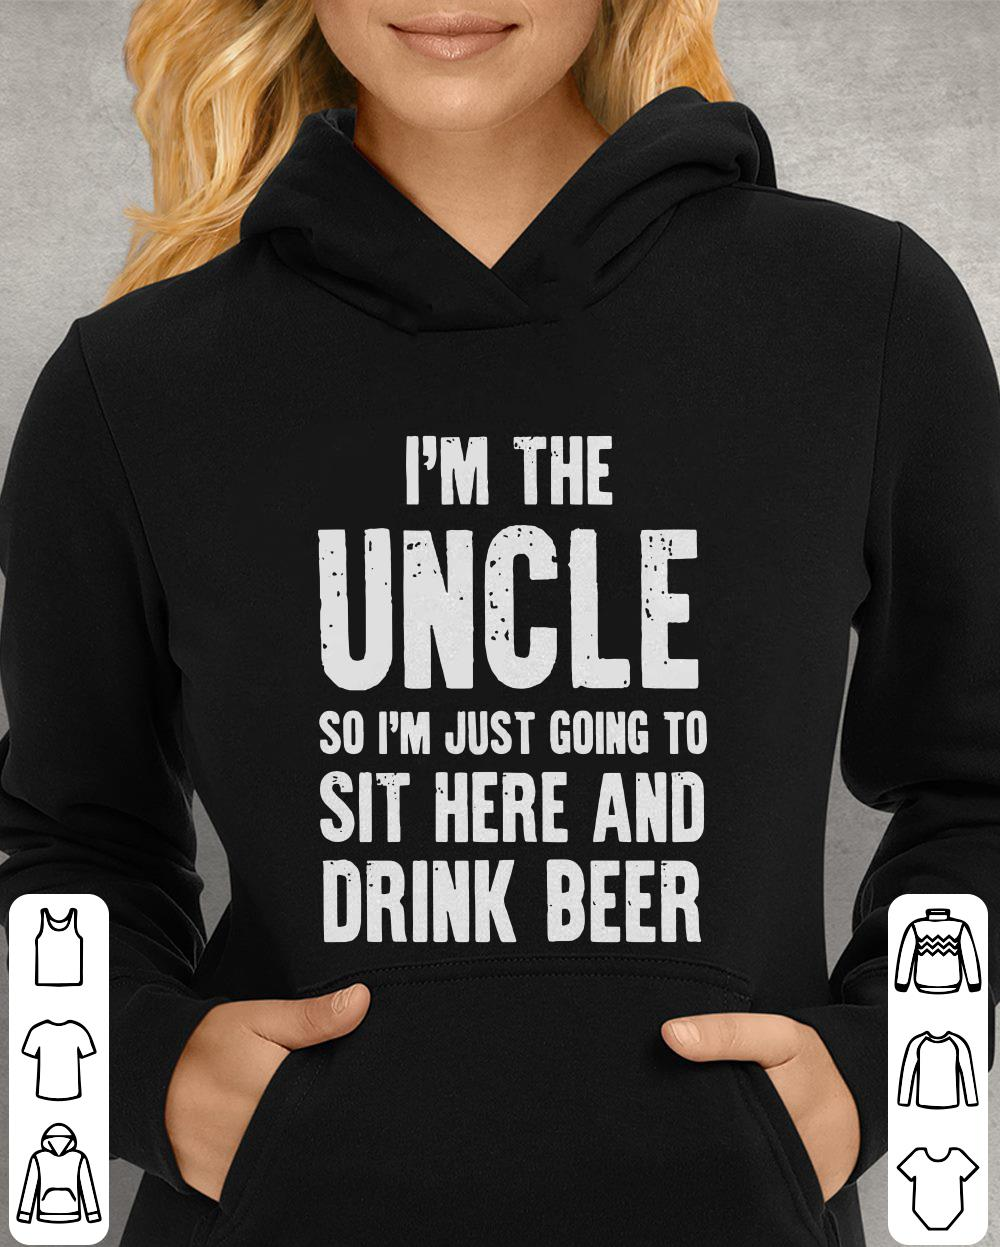 https://unicornshirts.net/images/2018/11/I-m-the-uncle-so-I-m-just-going-to-sit-here-and-drink-beer-shirt_4.jpg